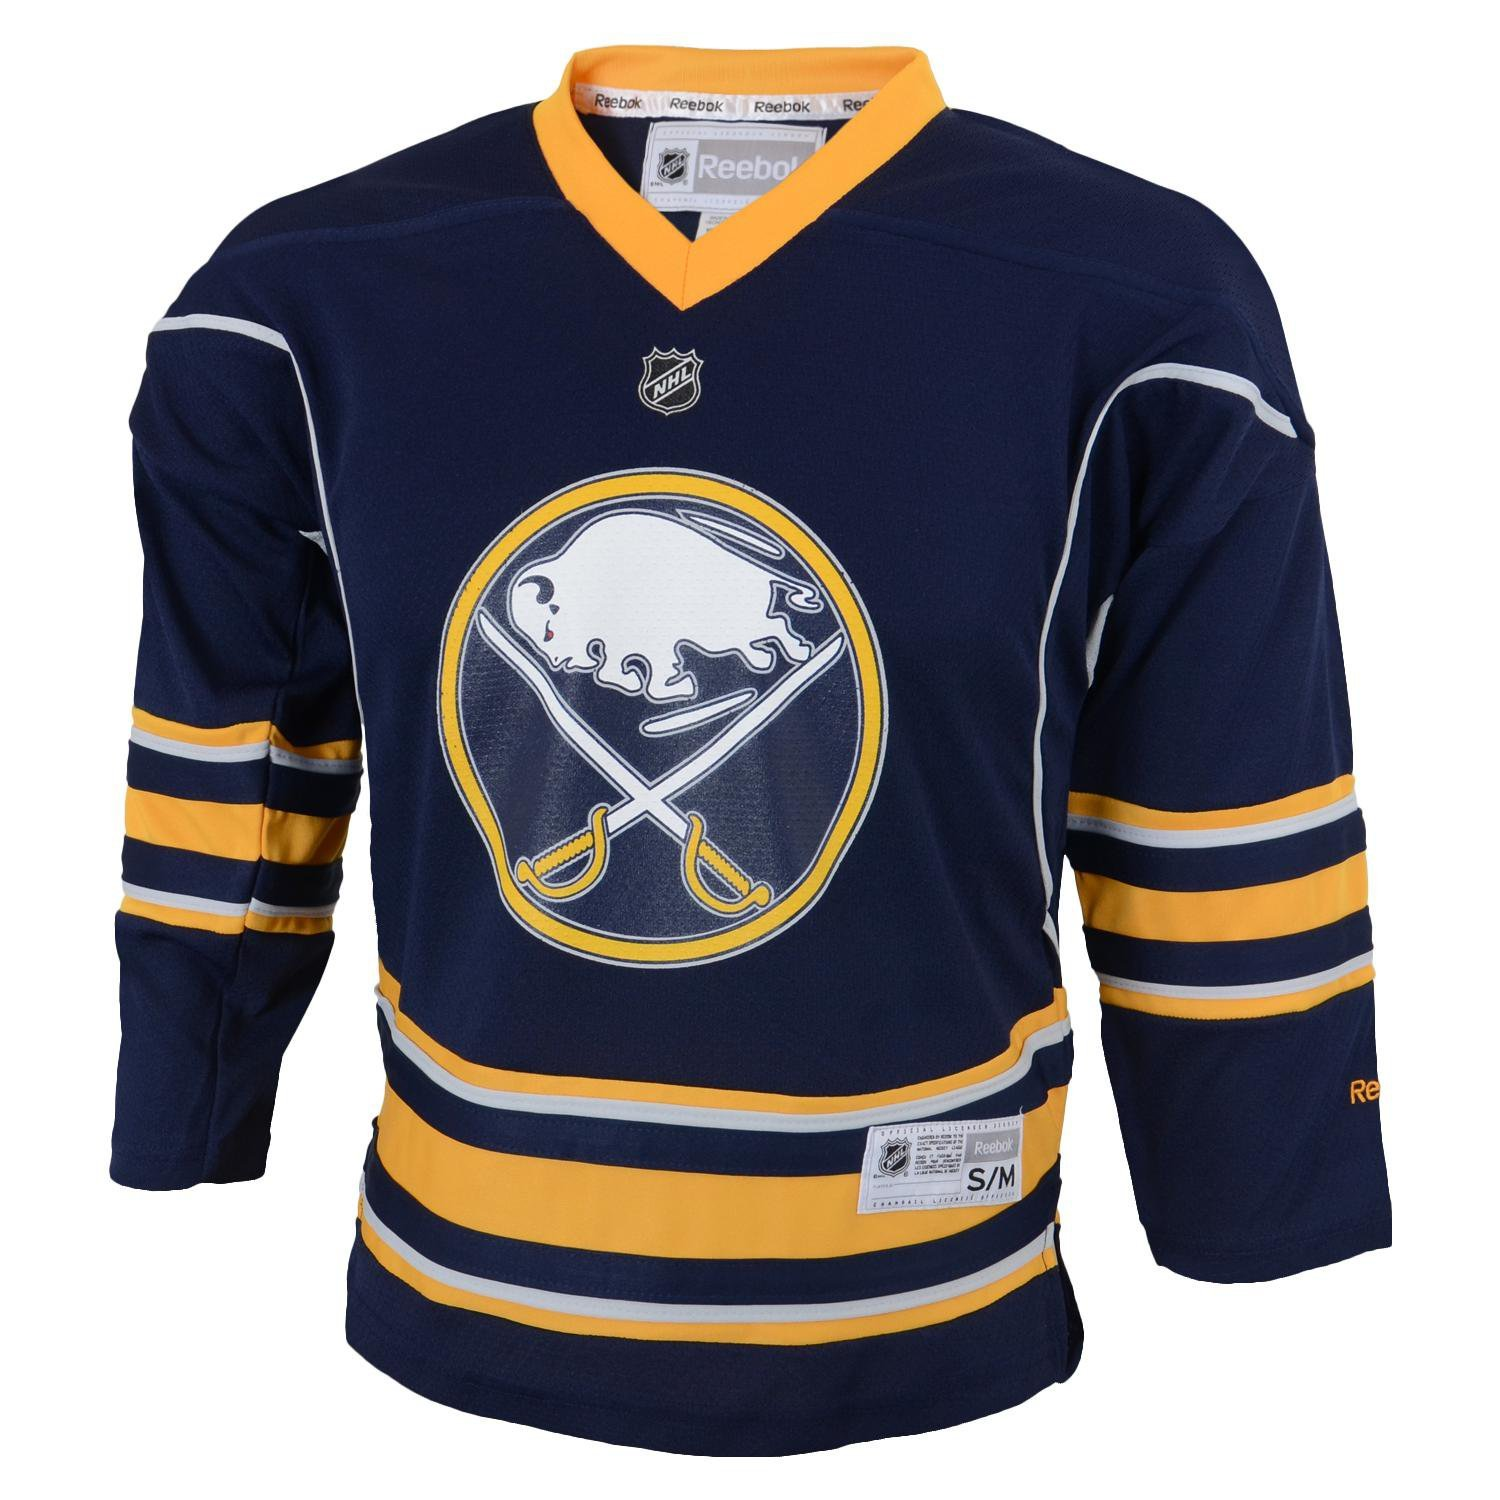 NHL Buffalo Sabres Team Color Replica Jersey Youth Navy Large/X-Large Reebok 58HWB